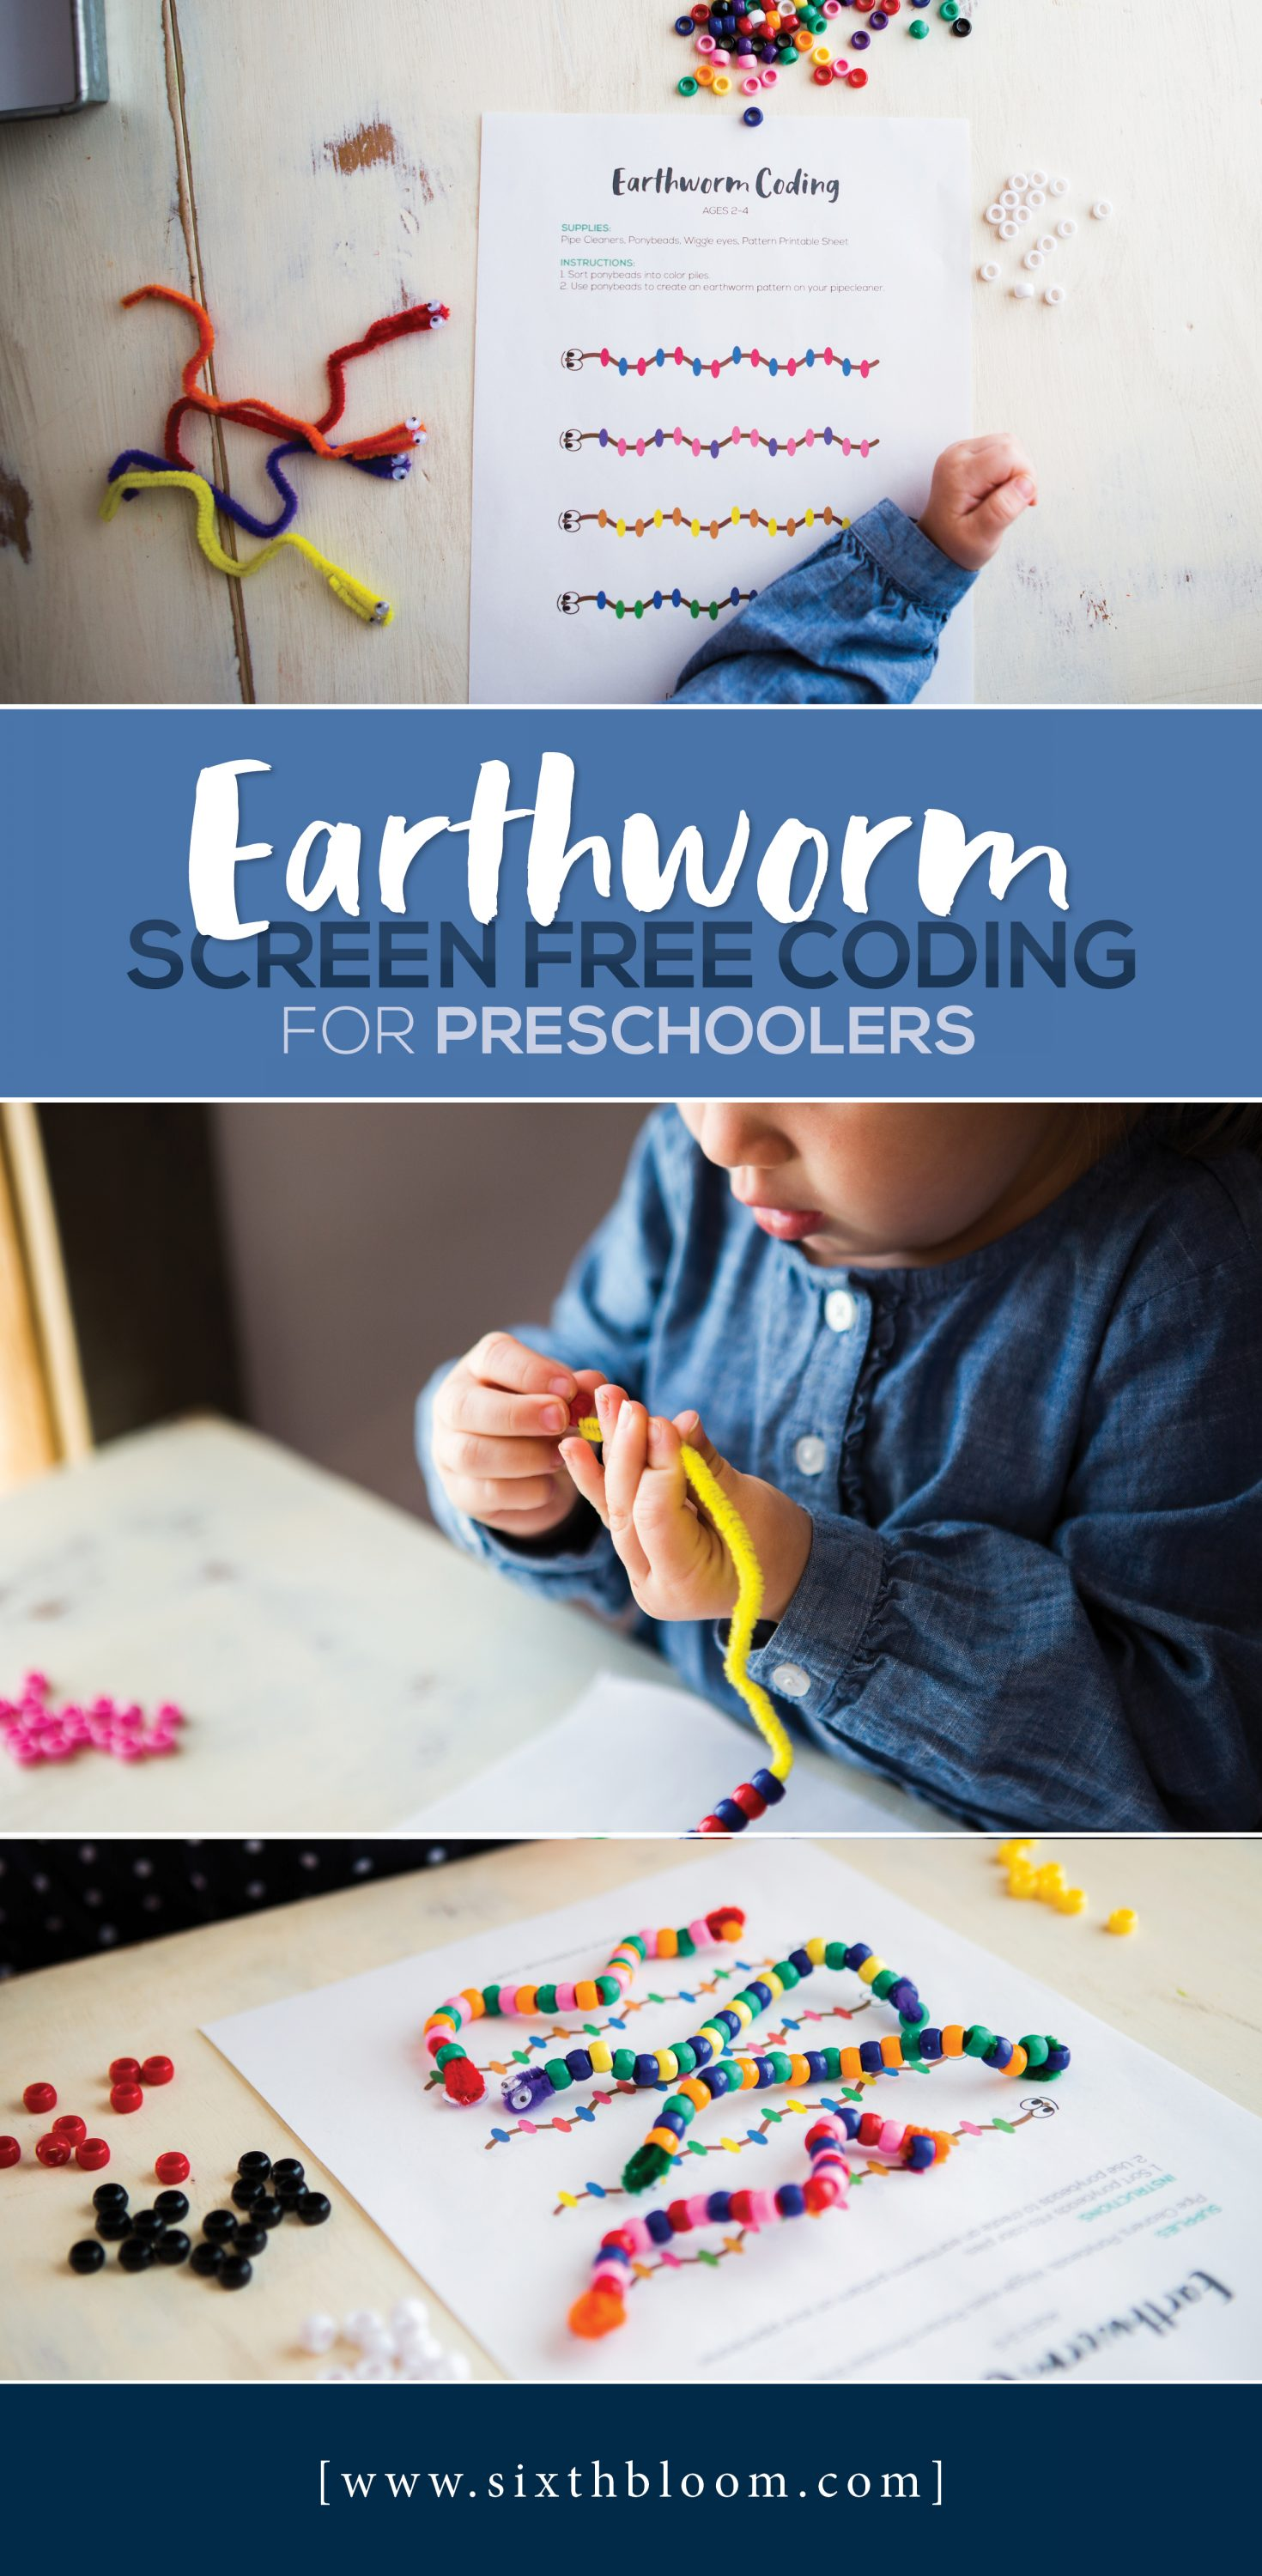 steam activities for preschoolers #STEAM #Preschool #preschooler #freeprintable #printable #earthwormactivity #screenfree #preschool #stemkids #stem